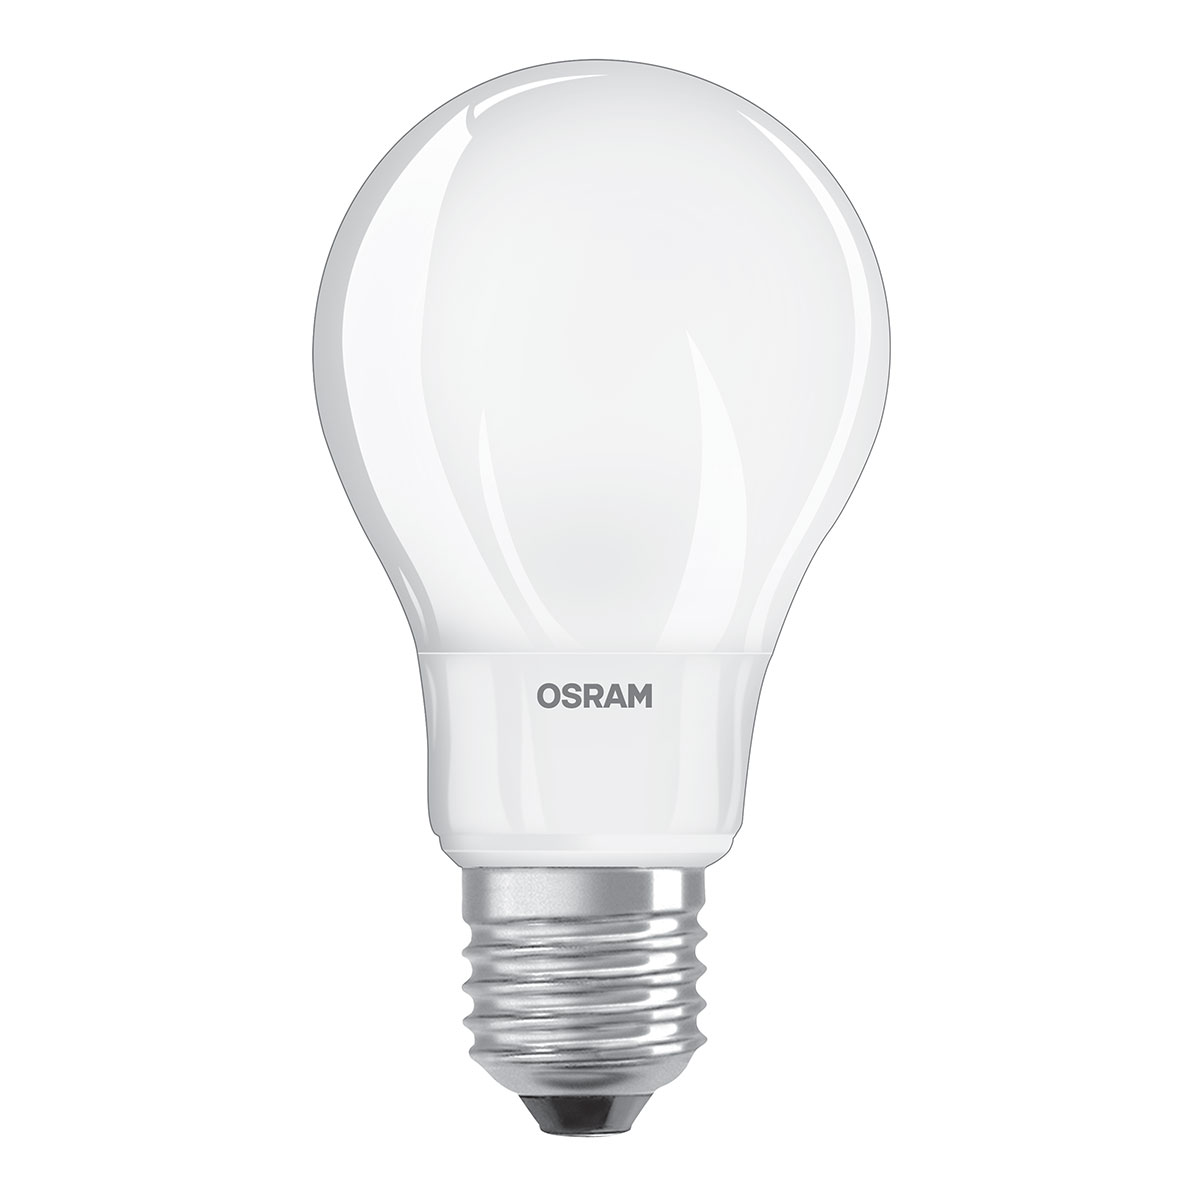 osram ampoule led retrofit standard e27 8w 60w a ampoule led osram sur. Black Bedroom Furniture Sets. Home Design Ideas